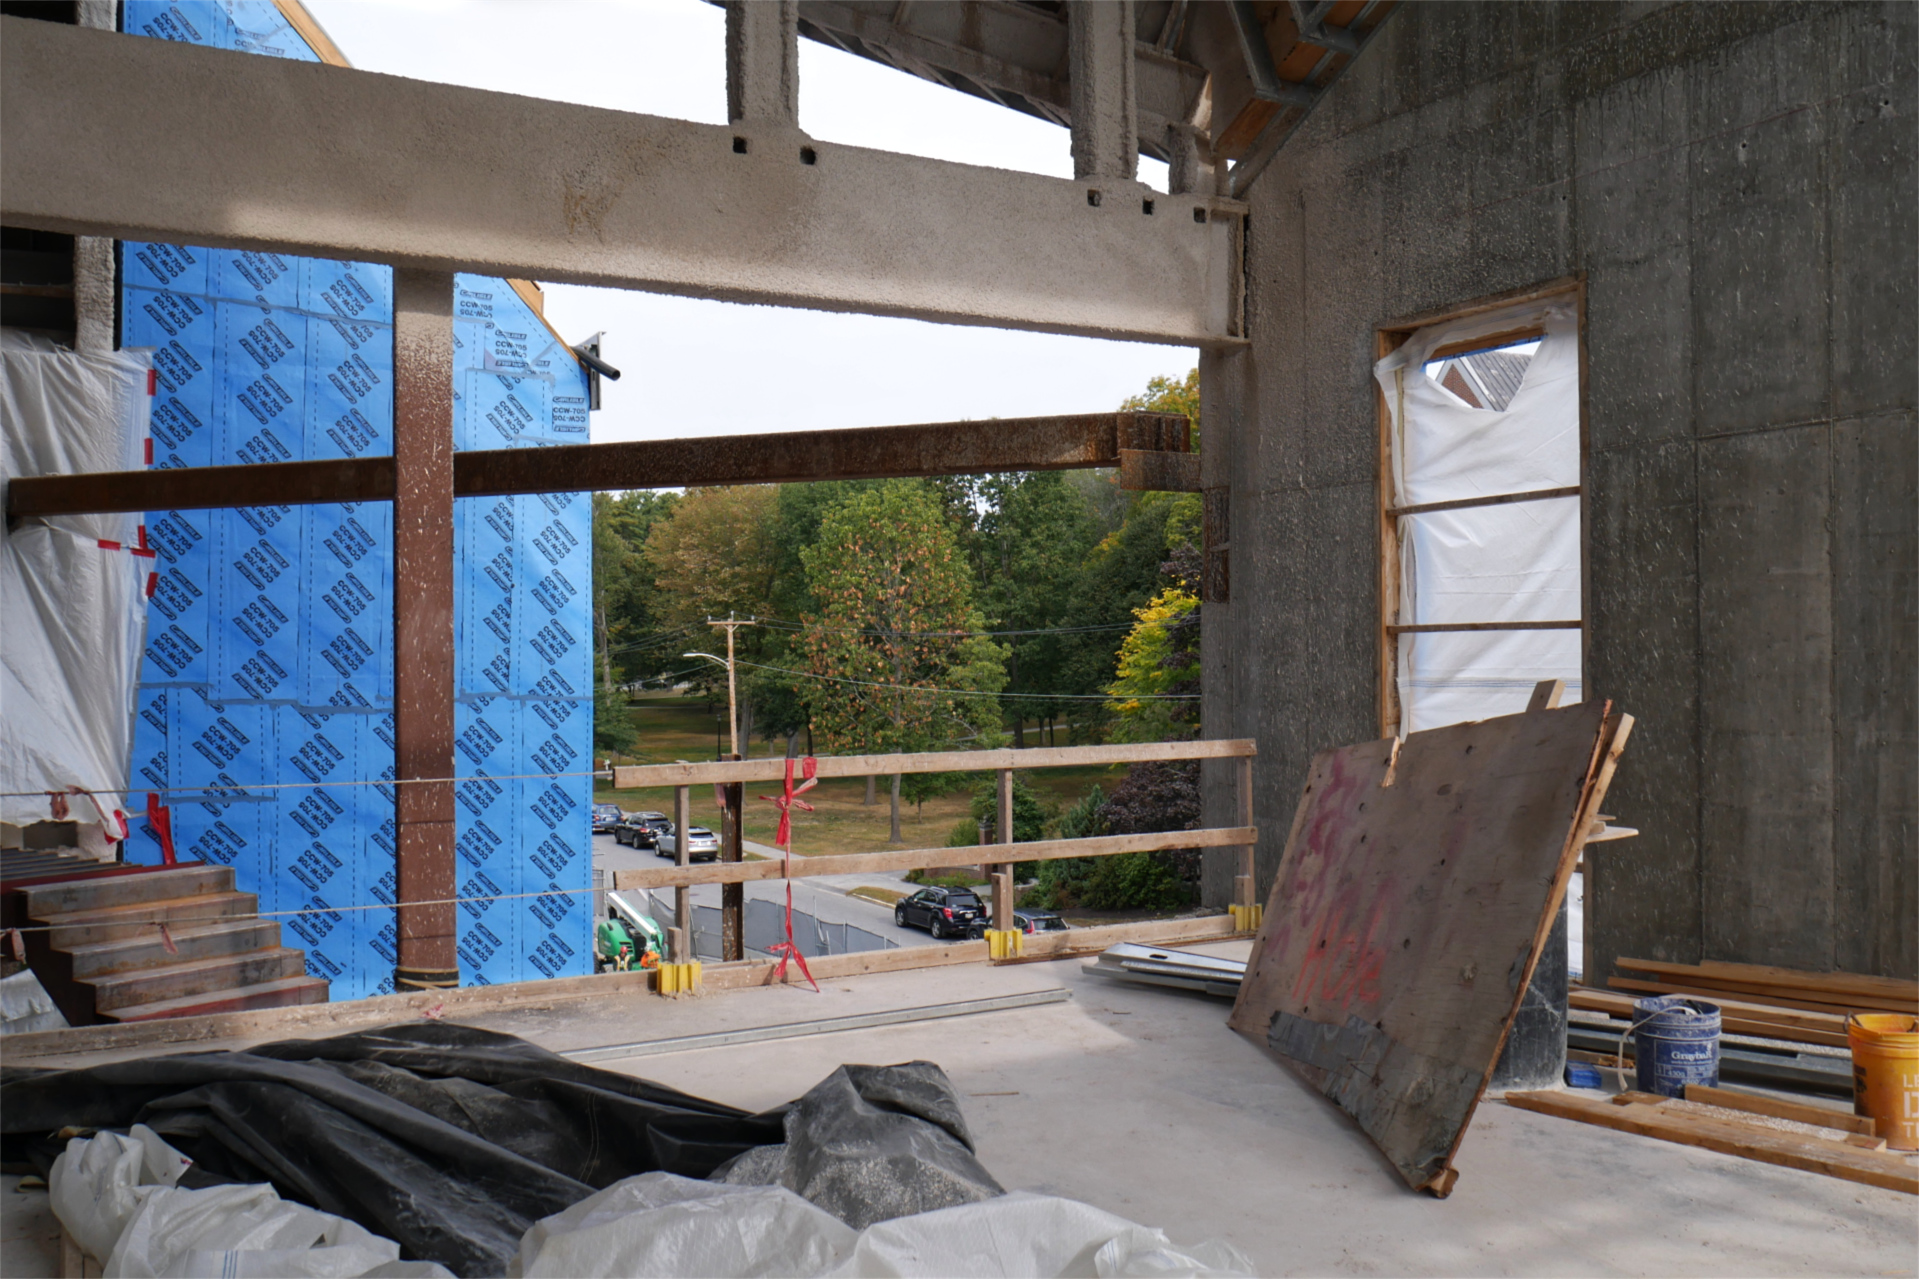 "Glass ""curtain walls"" on this third-floor classroom will provide views up and down Campus Avenue. This westward exposure reveals the Historic Quad. (Doug Hubley/Bates College)"